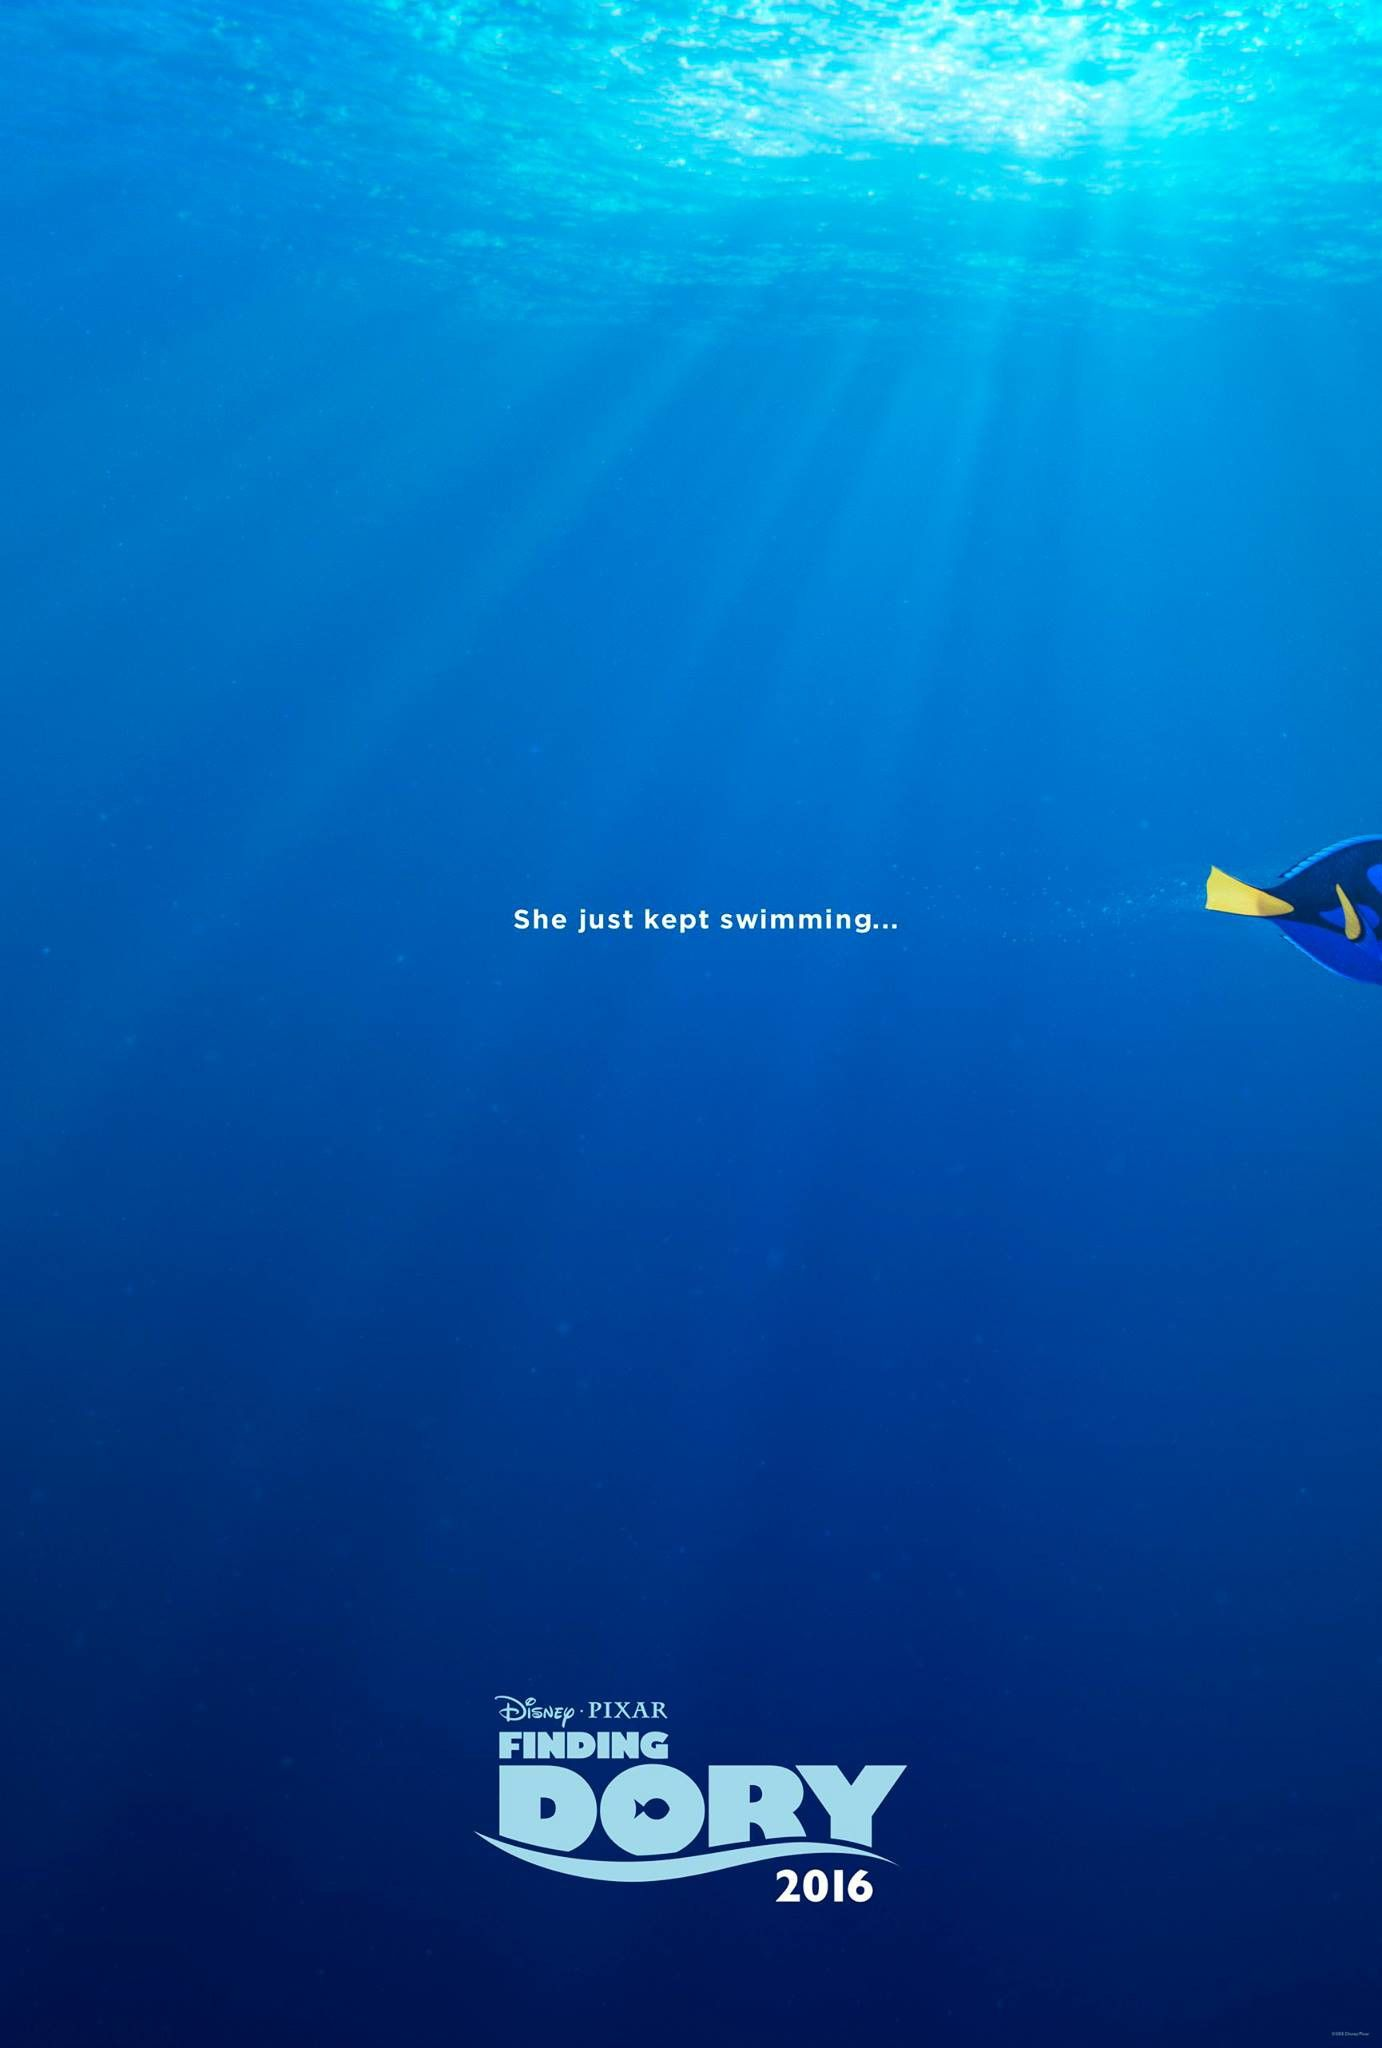 Dory Quotes Finding Dory Poster  All Things Disney  Pinterest  Finding Dory .